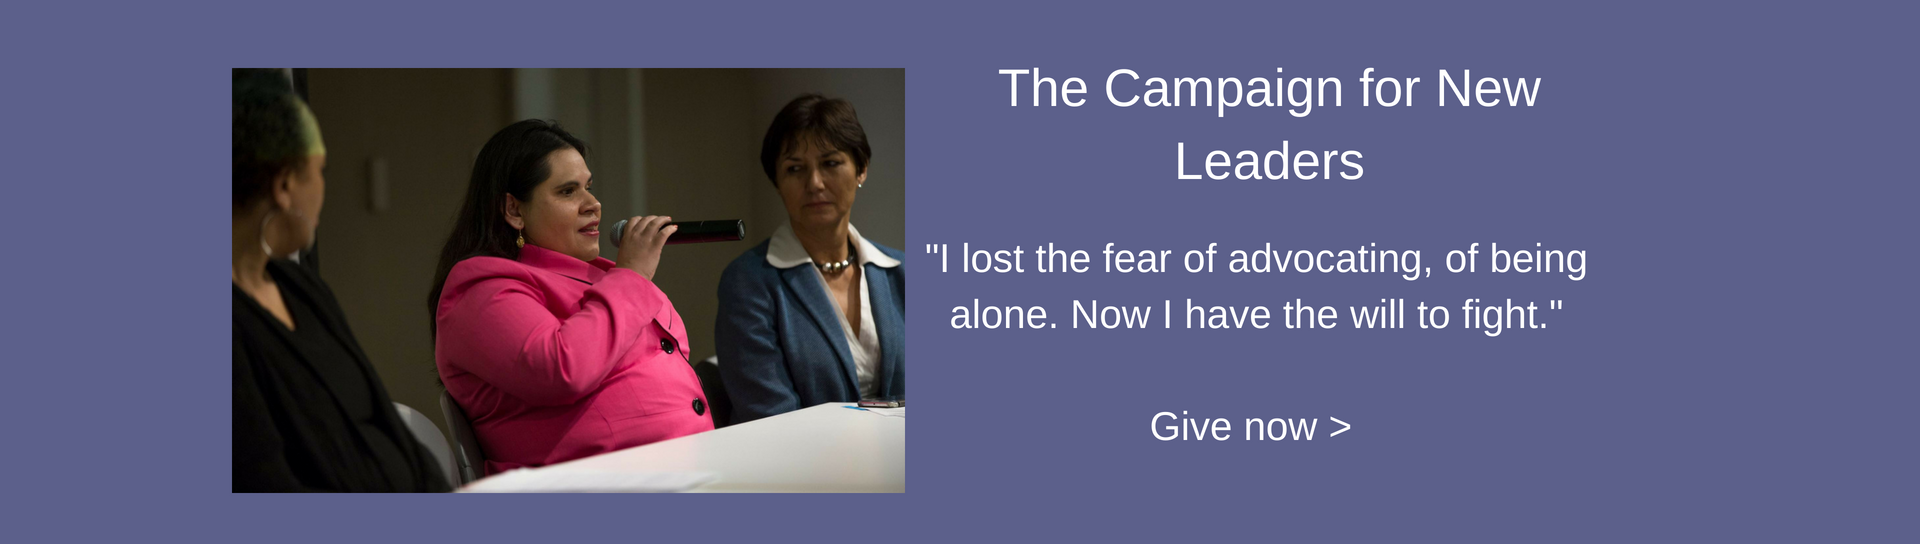 """Peer advocate Lilliete Lopez, who is blind, giving testimony at an event. Text reads: The Campaign for New Leaders. """"I lost the fear of advocating, of being alone. Now I have the will to fight."""" Give now. #CampaignForNewLeaders"""